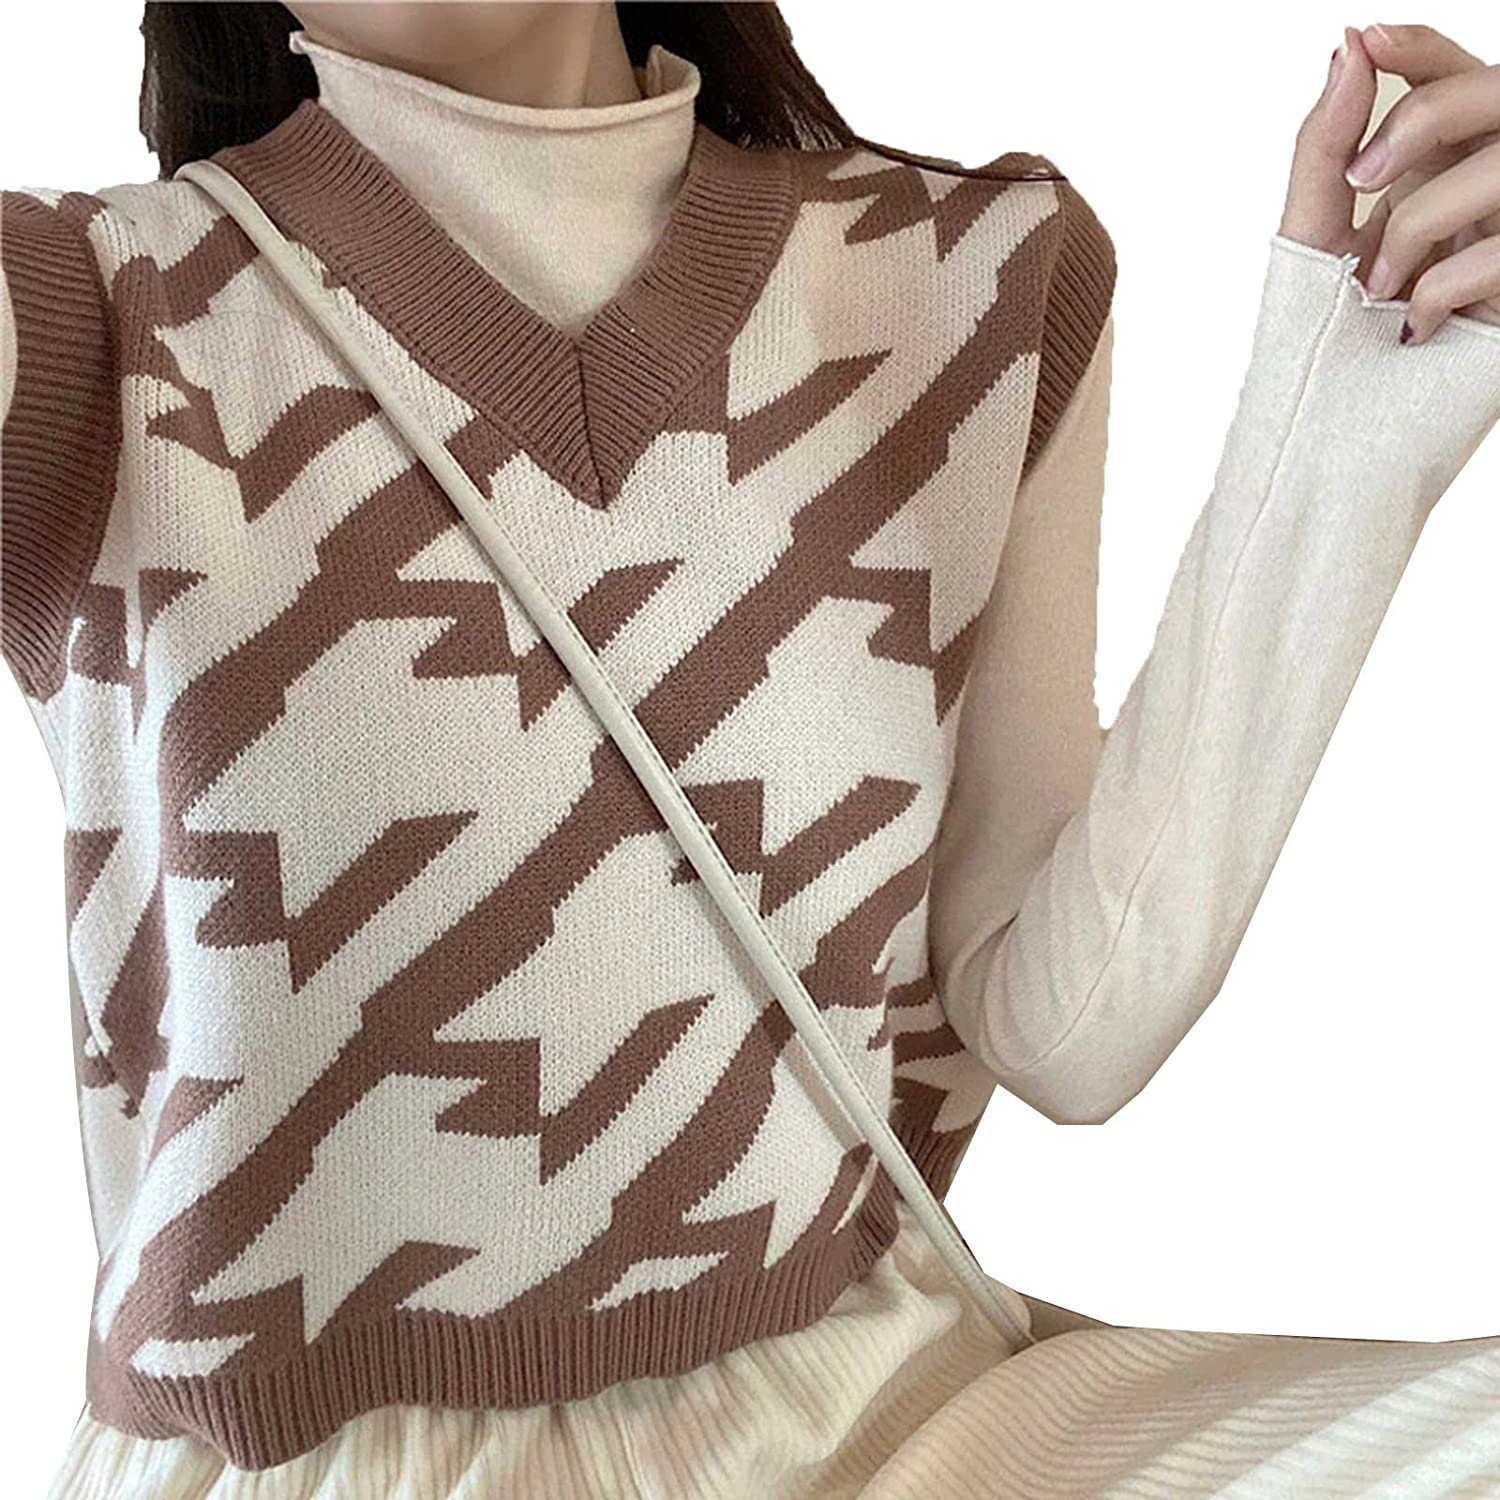 Everybody Let's Rock V Neck Houndstooth Knitted Vest Women Casual Korean Spring Autumn Sleeveless Sweater Waistcoats